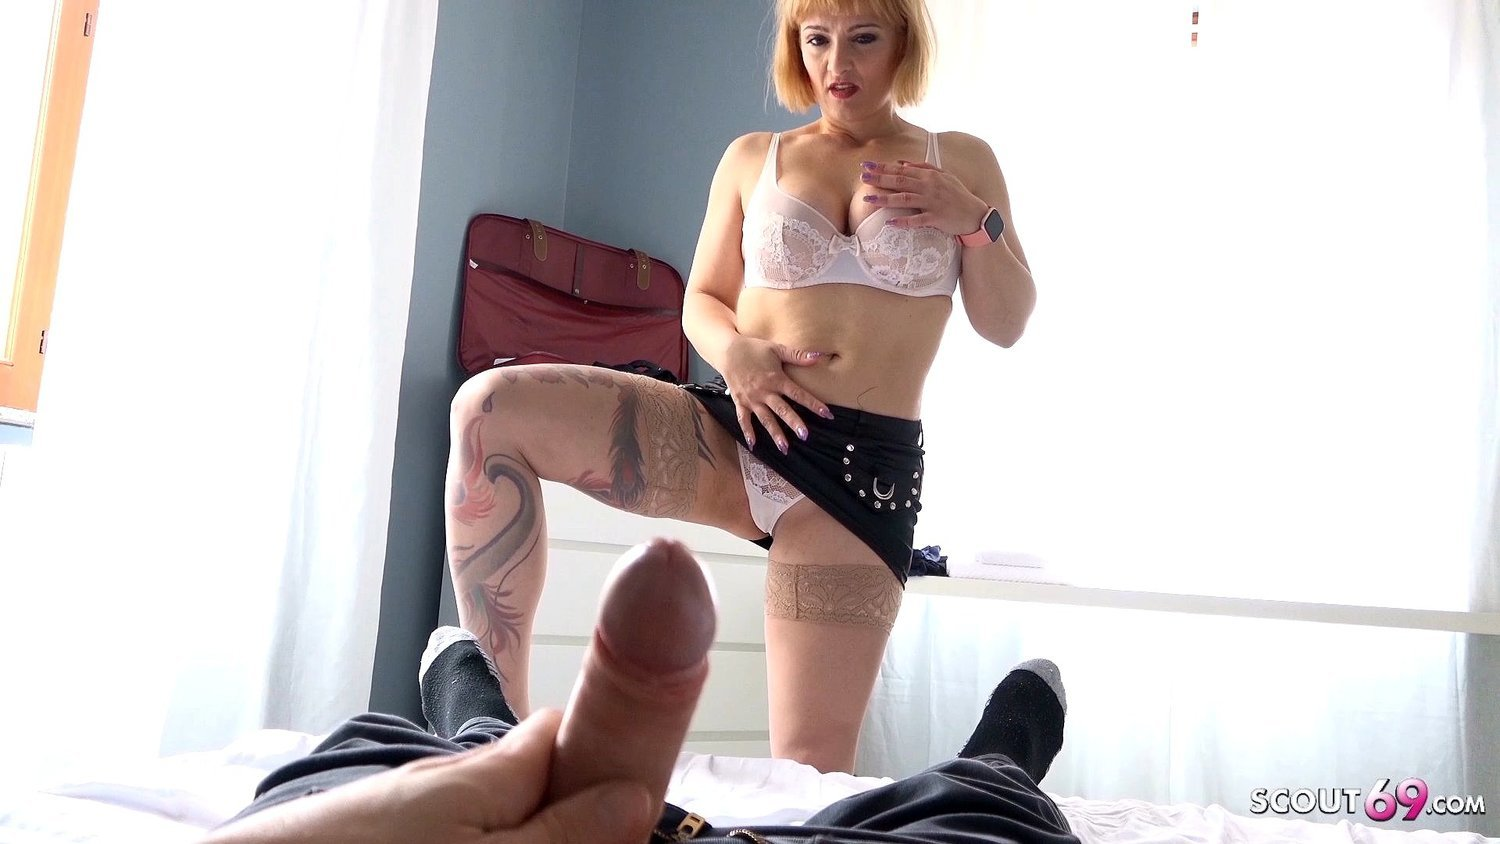 Big Tit Mom Gives Son Blowjob